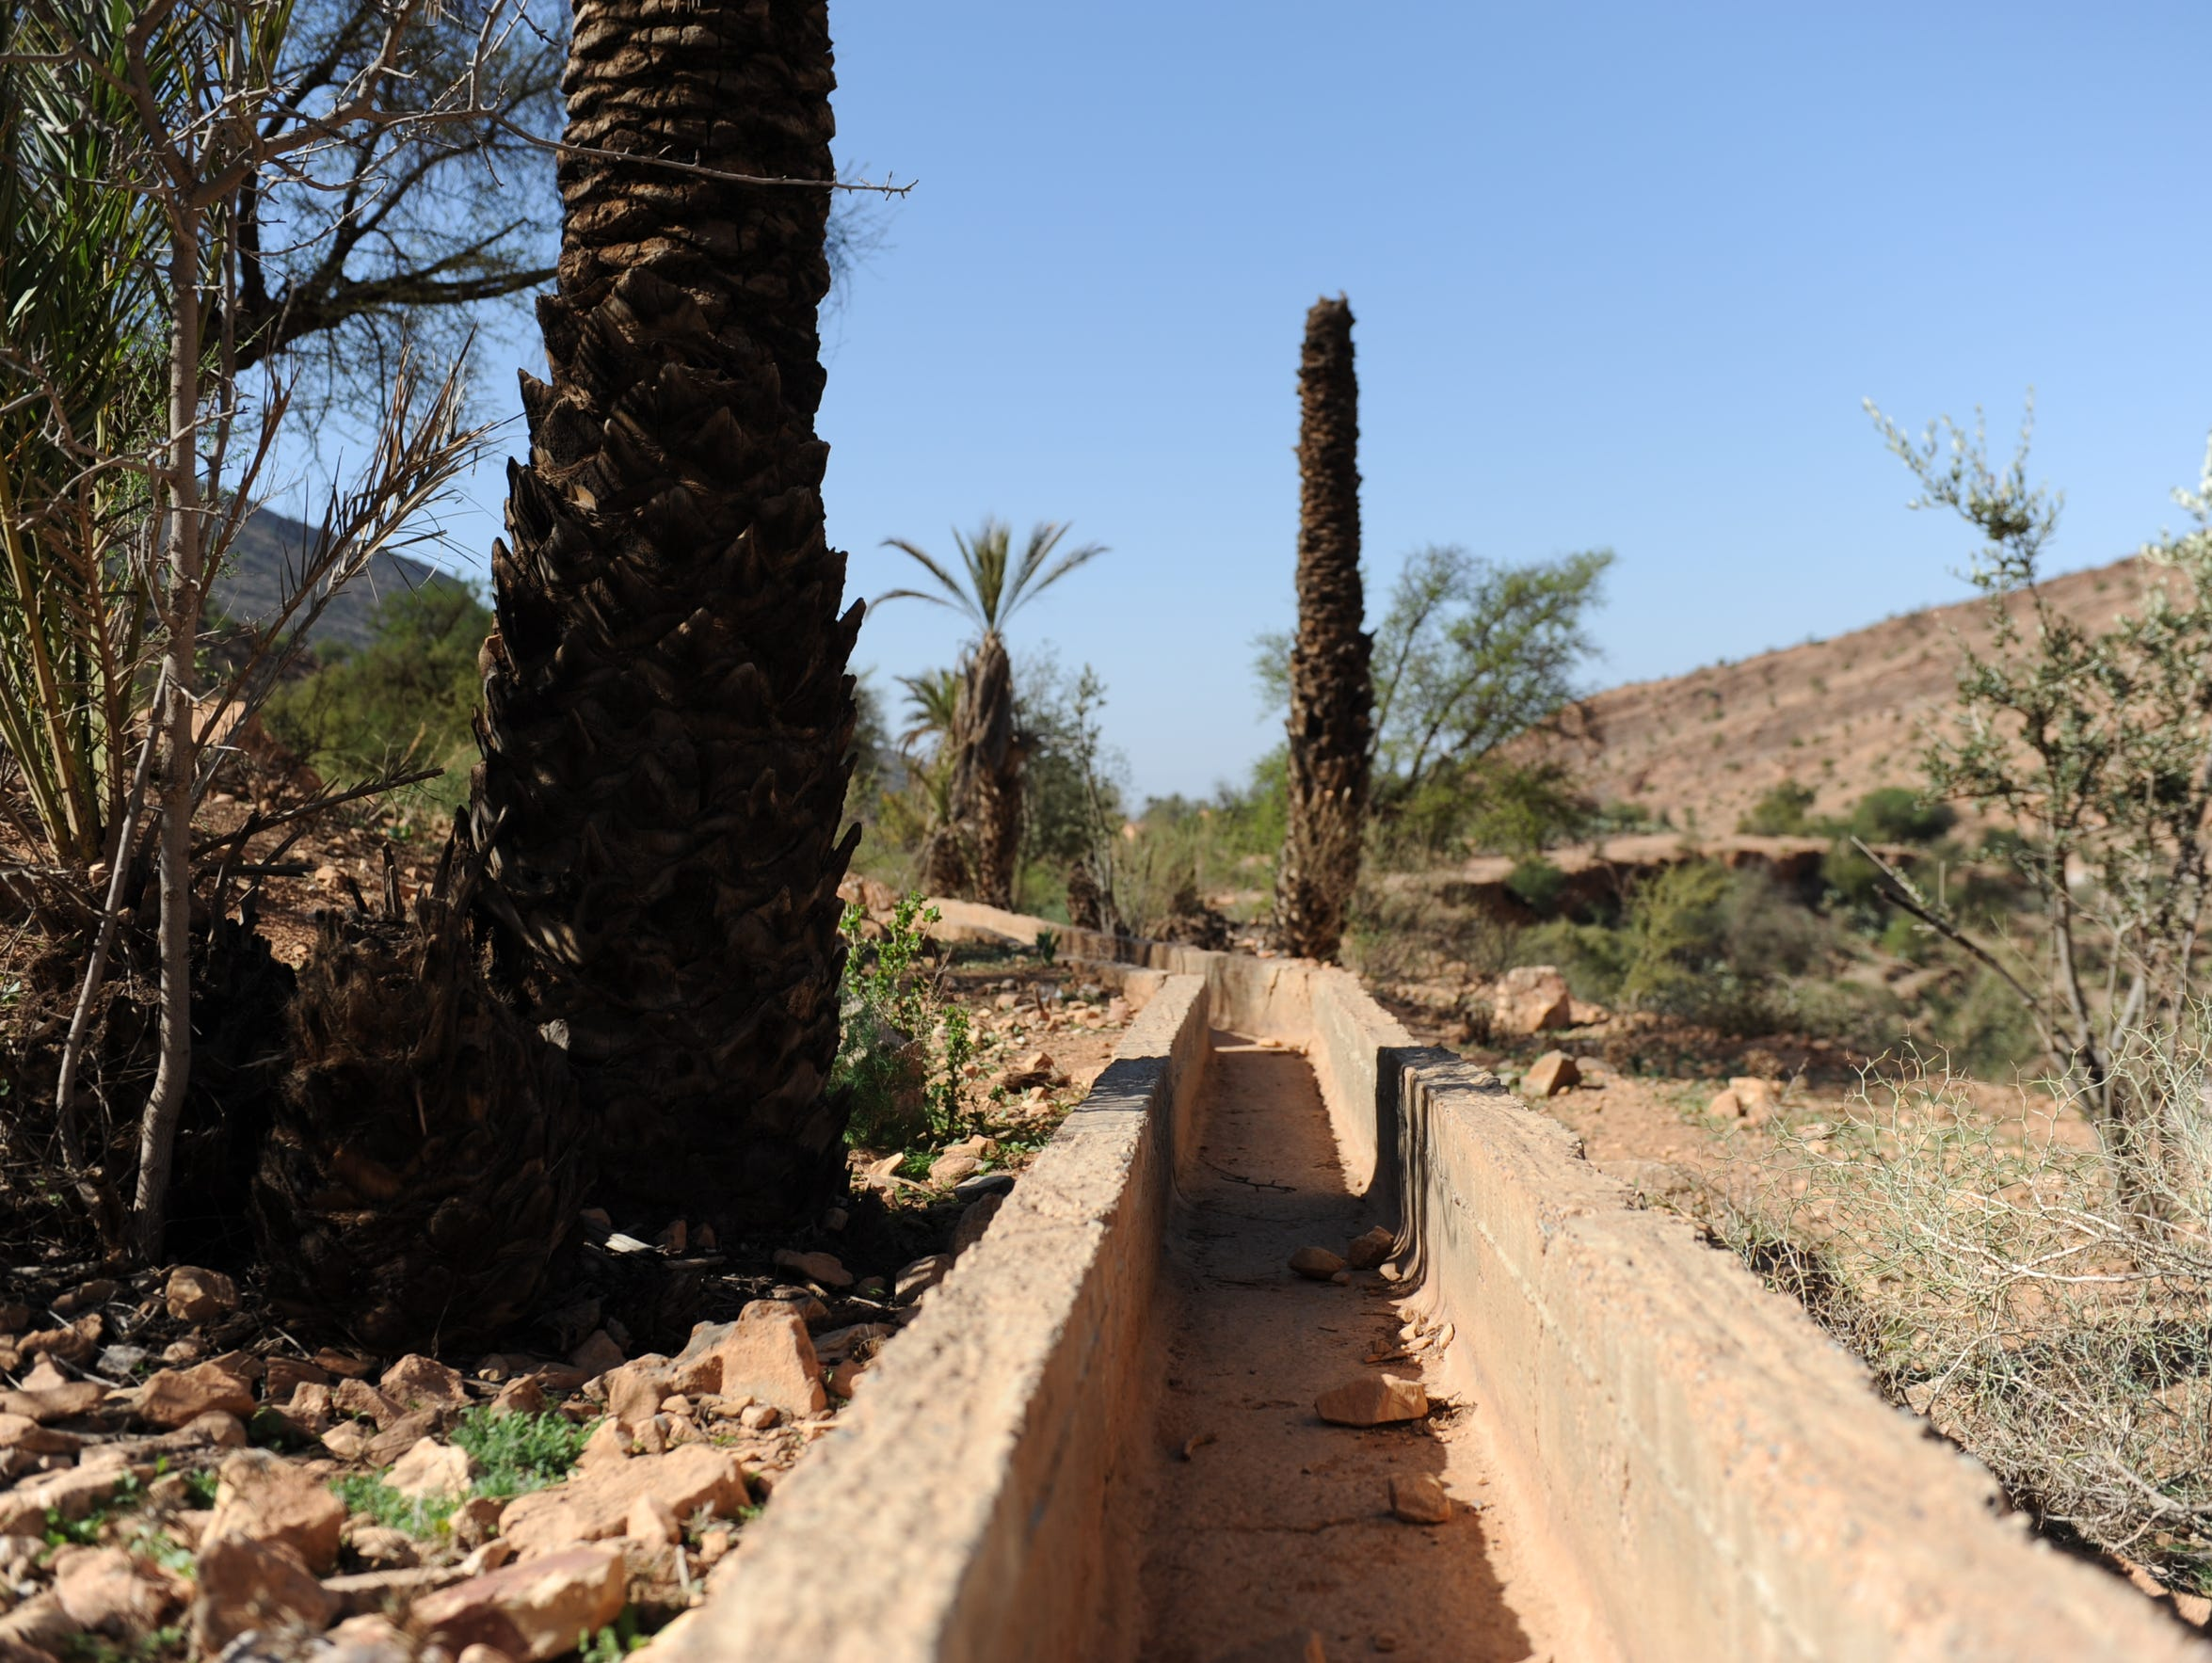 An old canal in the village of Assads is dry and strewn